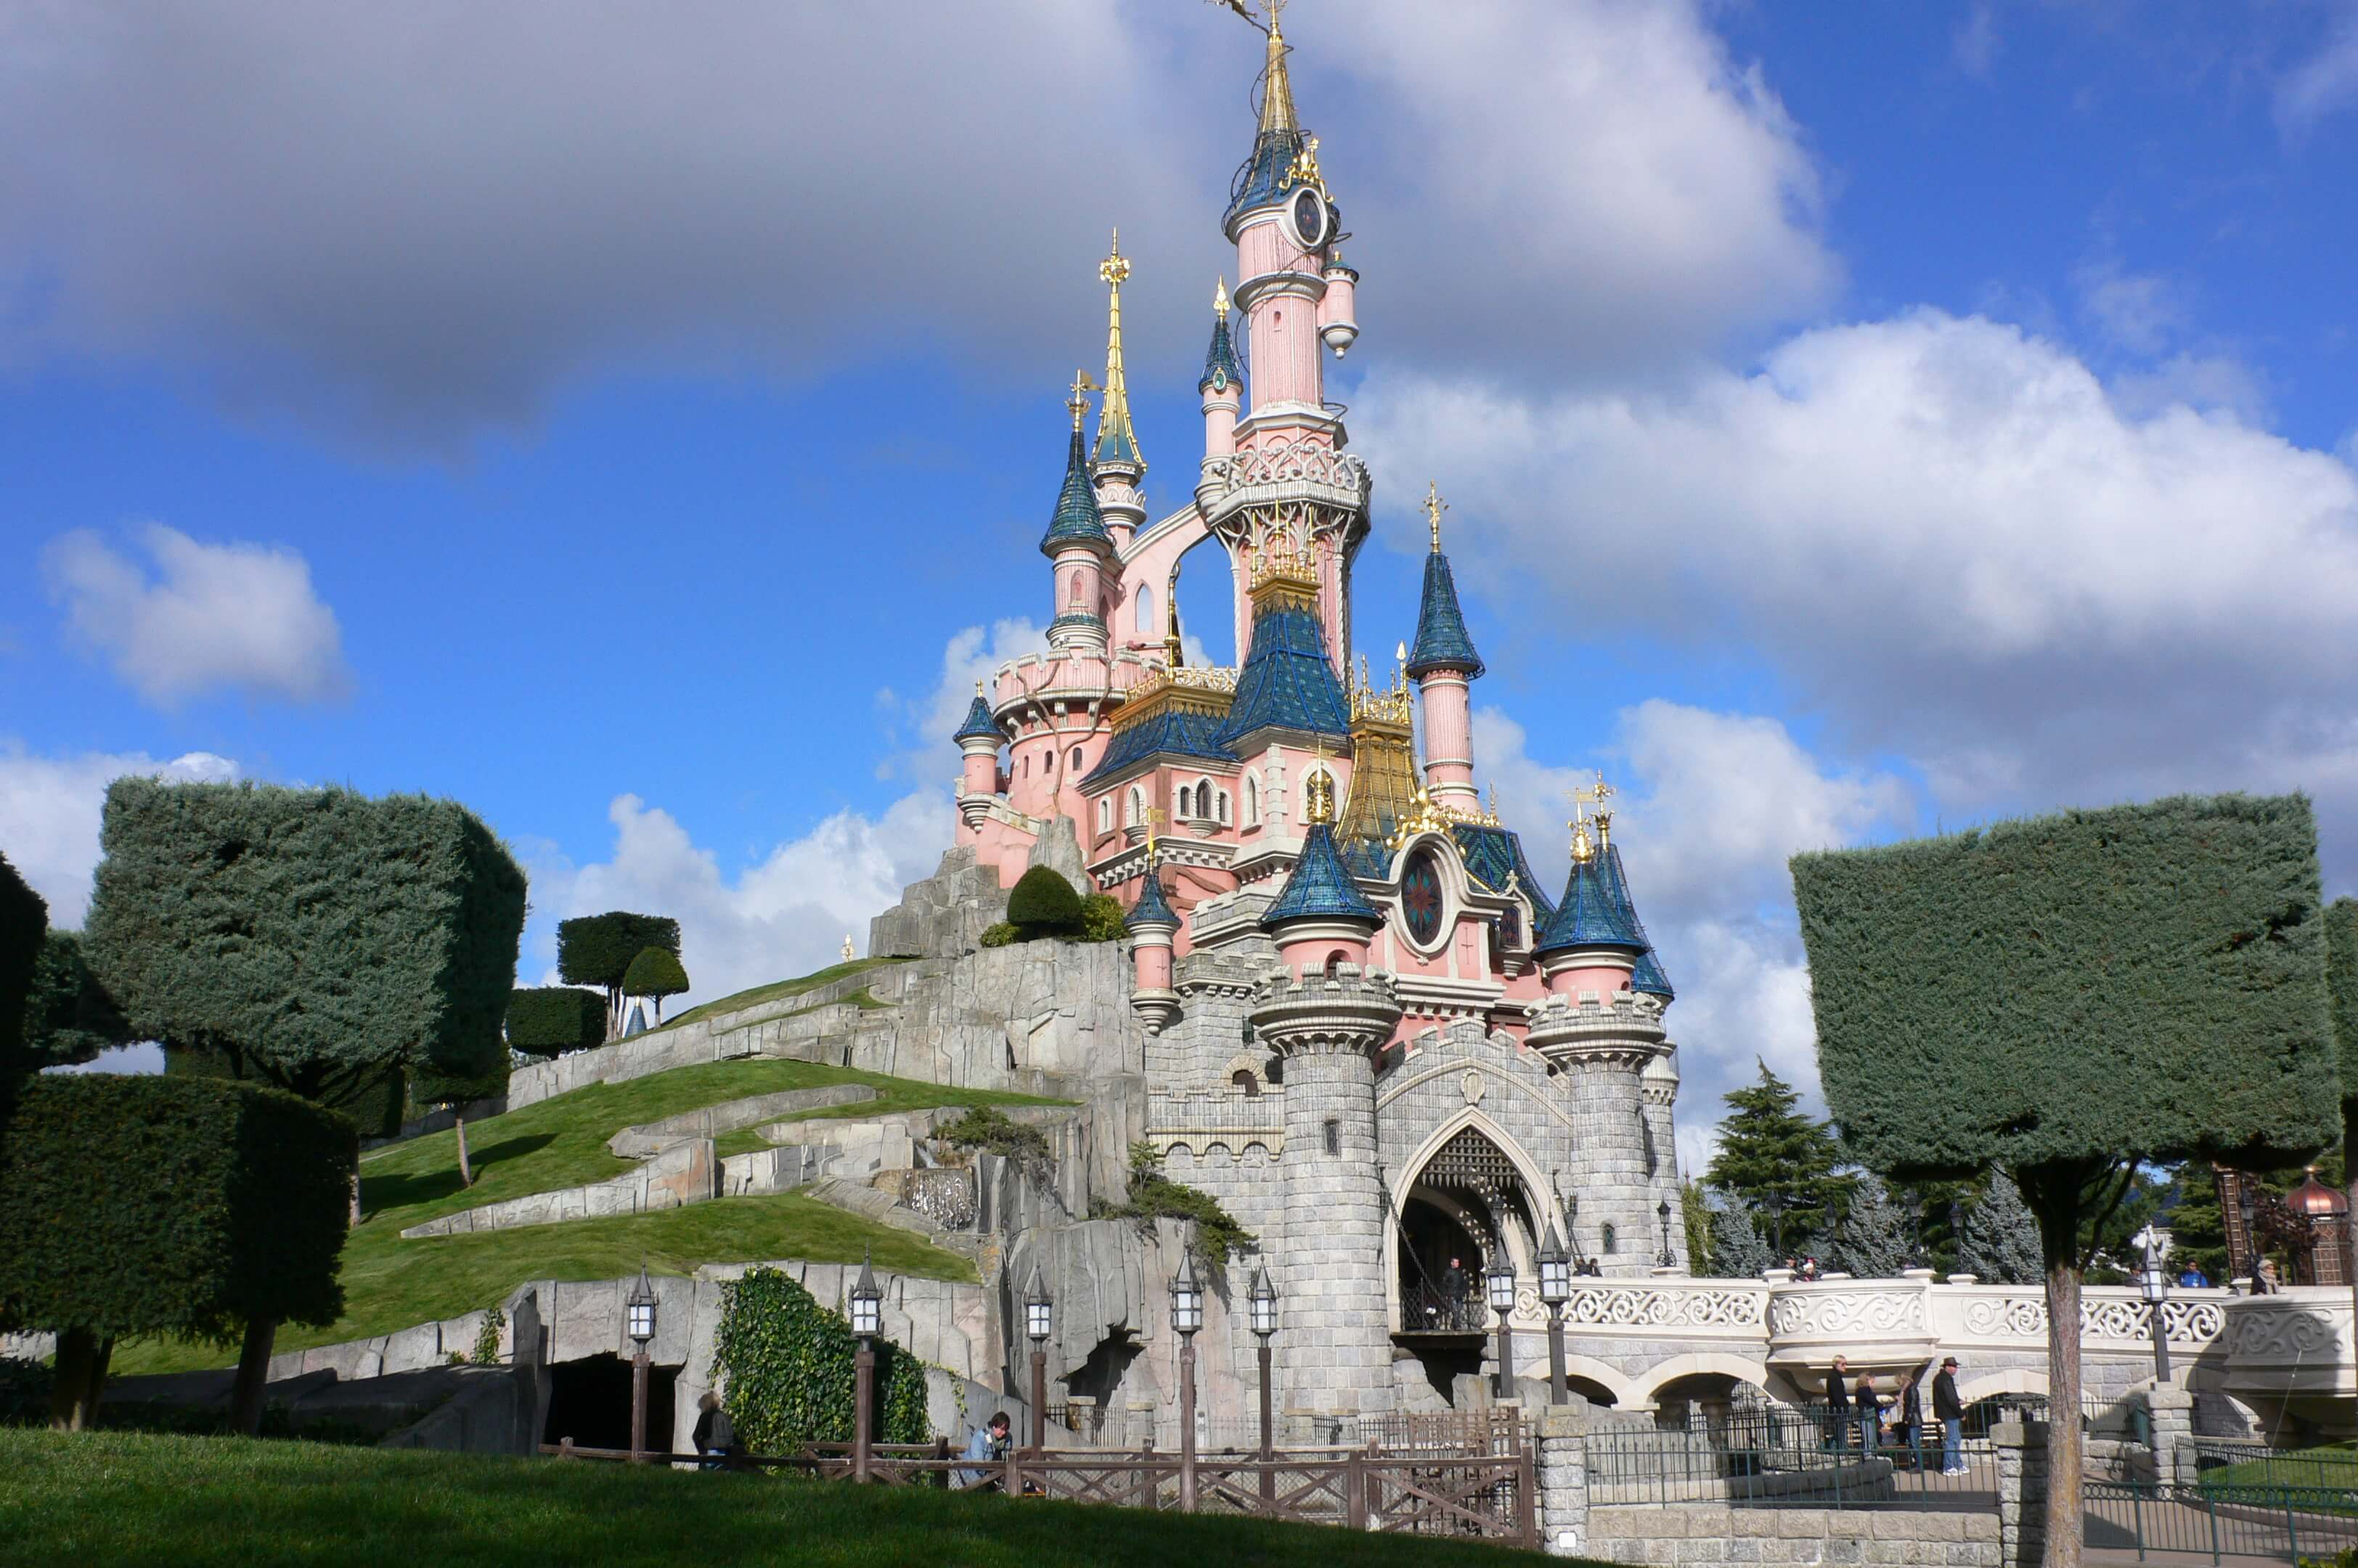 Disneyland Paris Tornerose slot.jpg